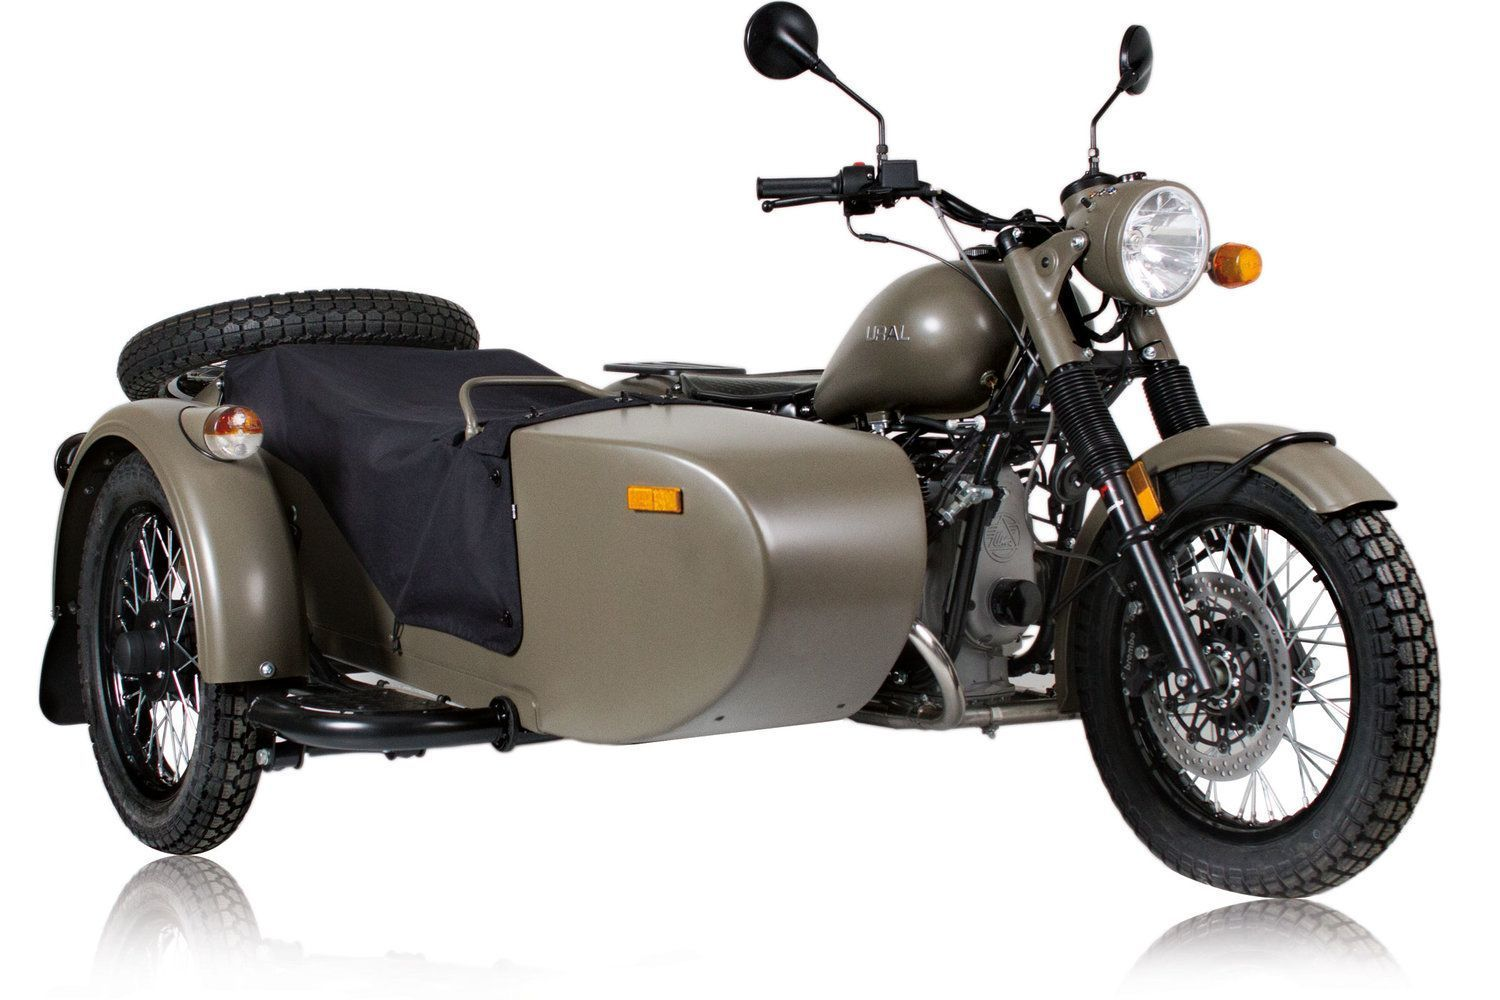 Review of Ural motorcycles, part 2 | PowerSport